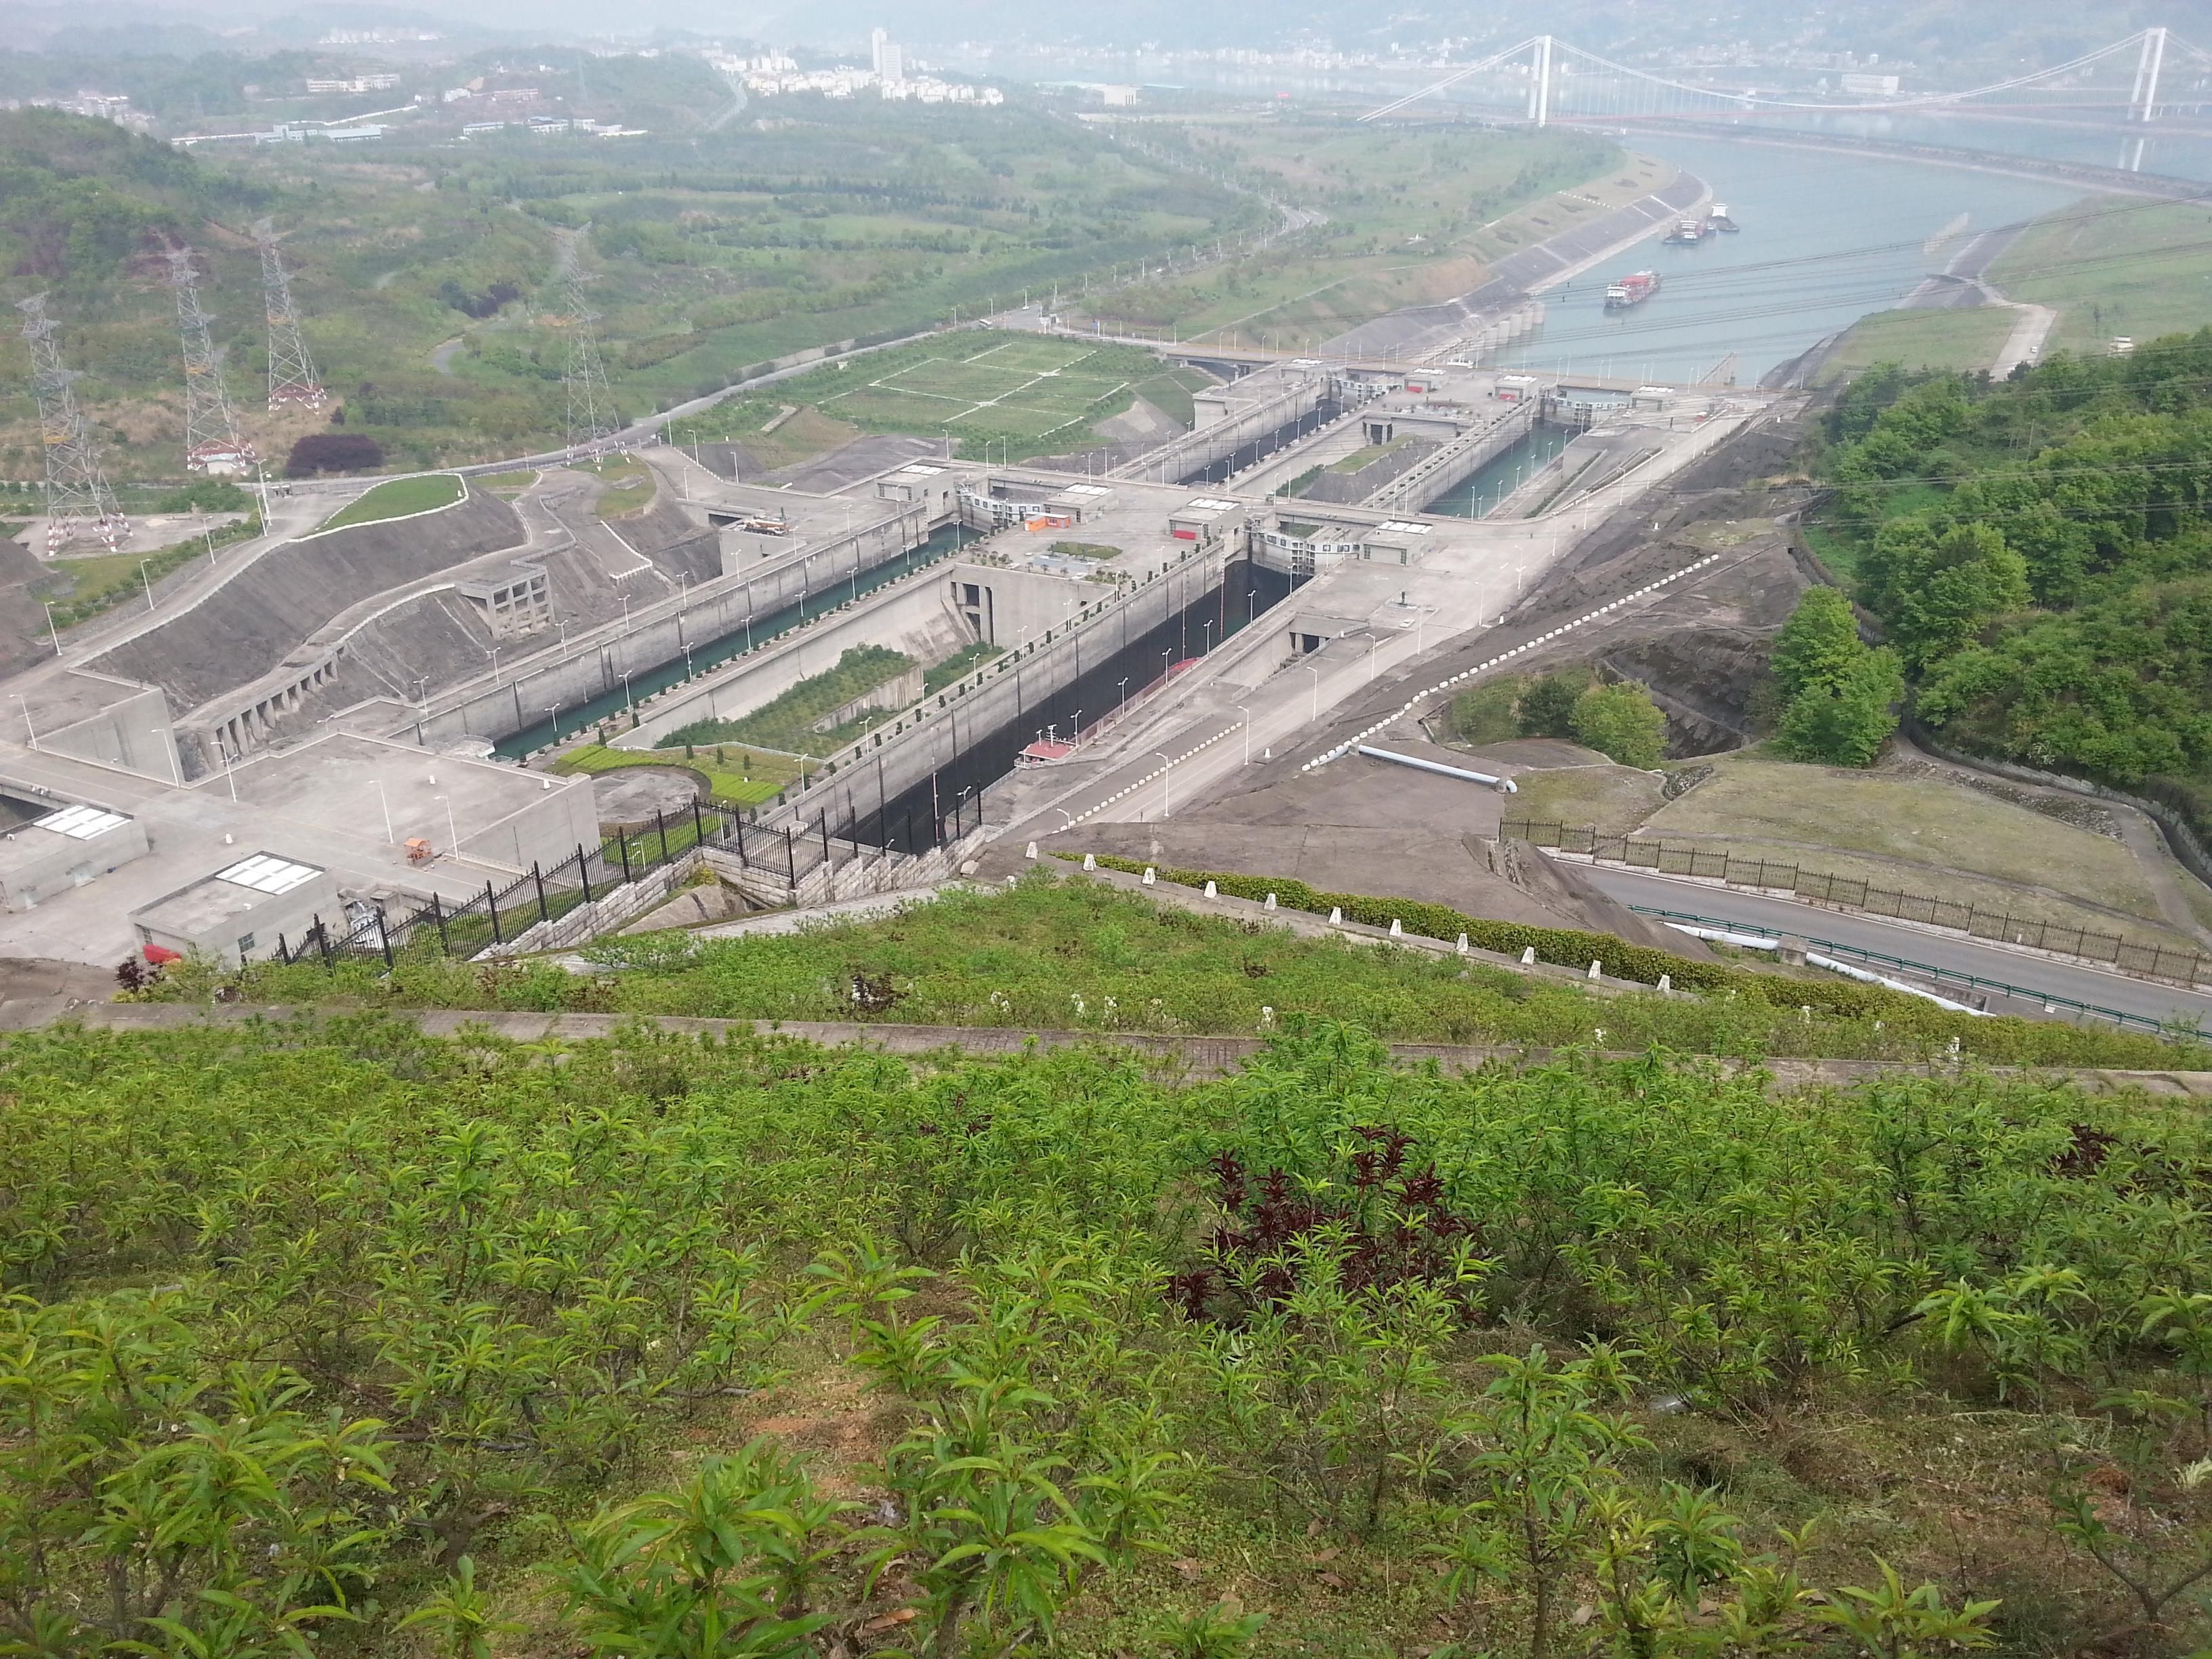 an introduction to the history of the three gorges dam A child led introduction to sandouping in hubei province, china li memgke lives  near sandouping in the shadow of the three gorges dam, very close to the.